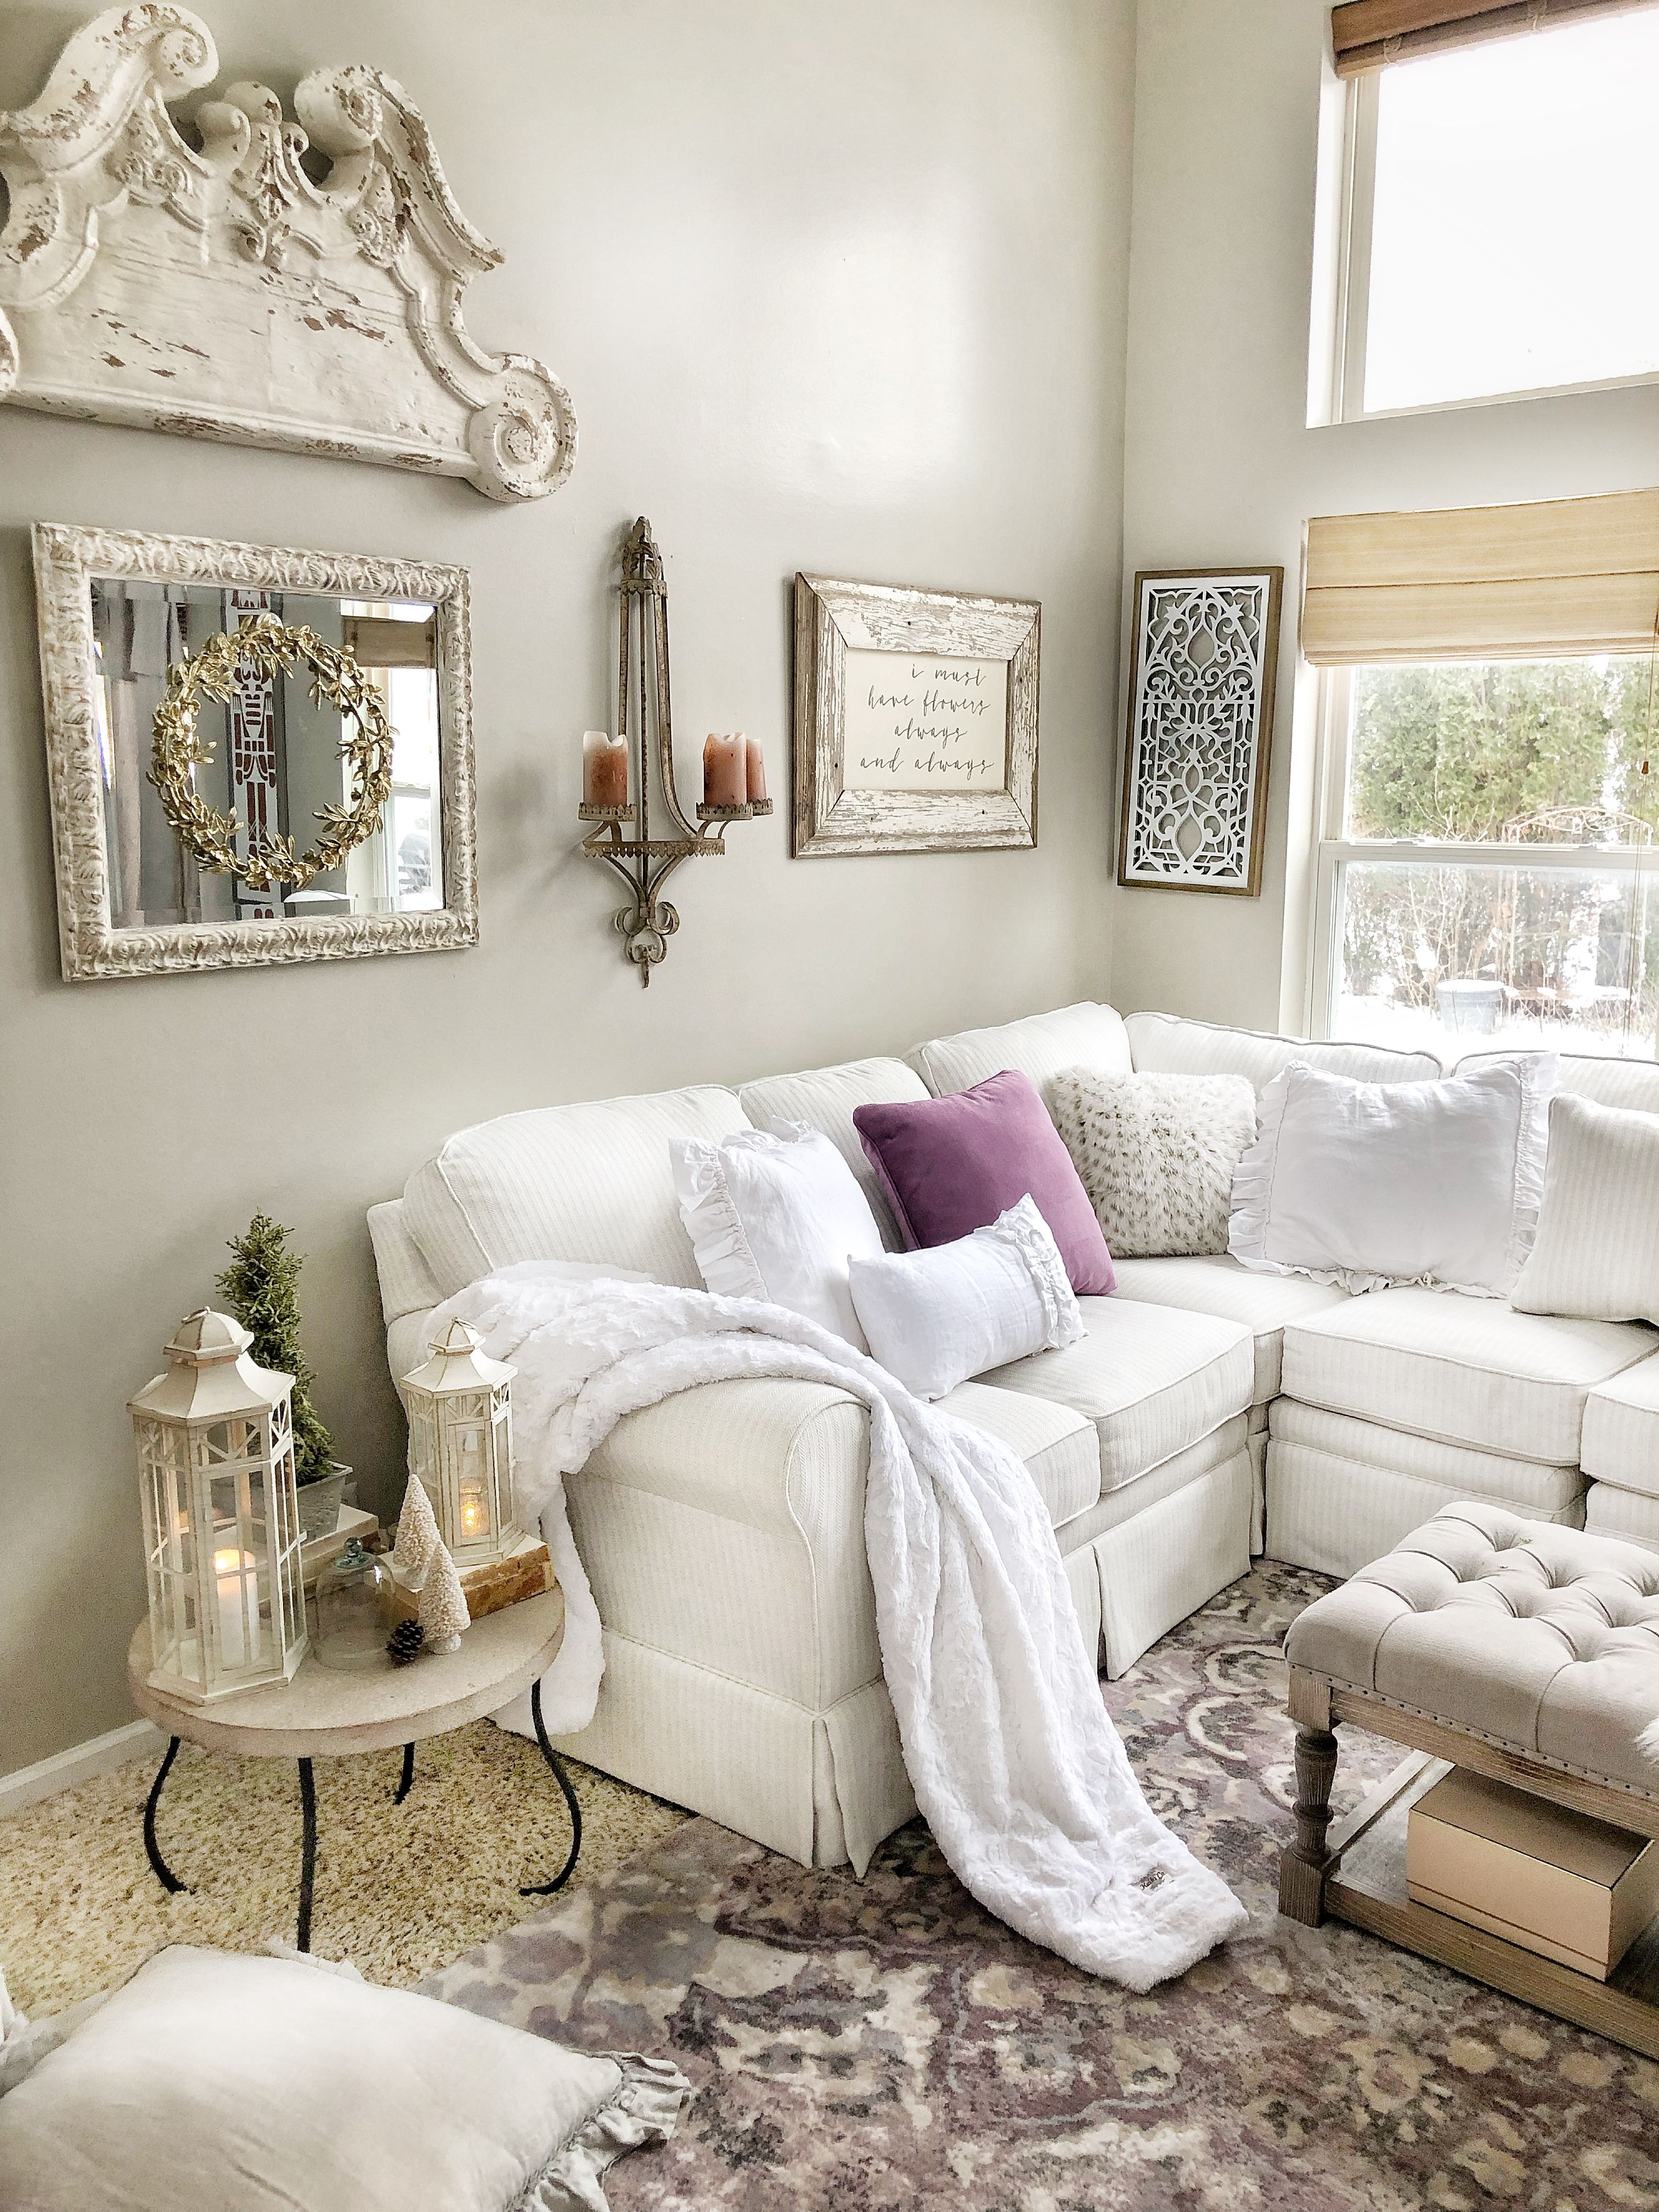 Living Room Paint Color Magnolia Diy French Country Romantic Living Room Colors Paint Colors For Living Room Living Room